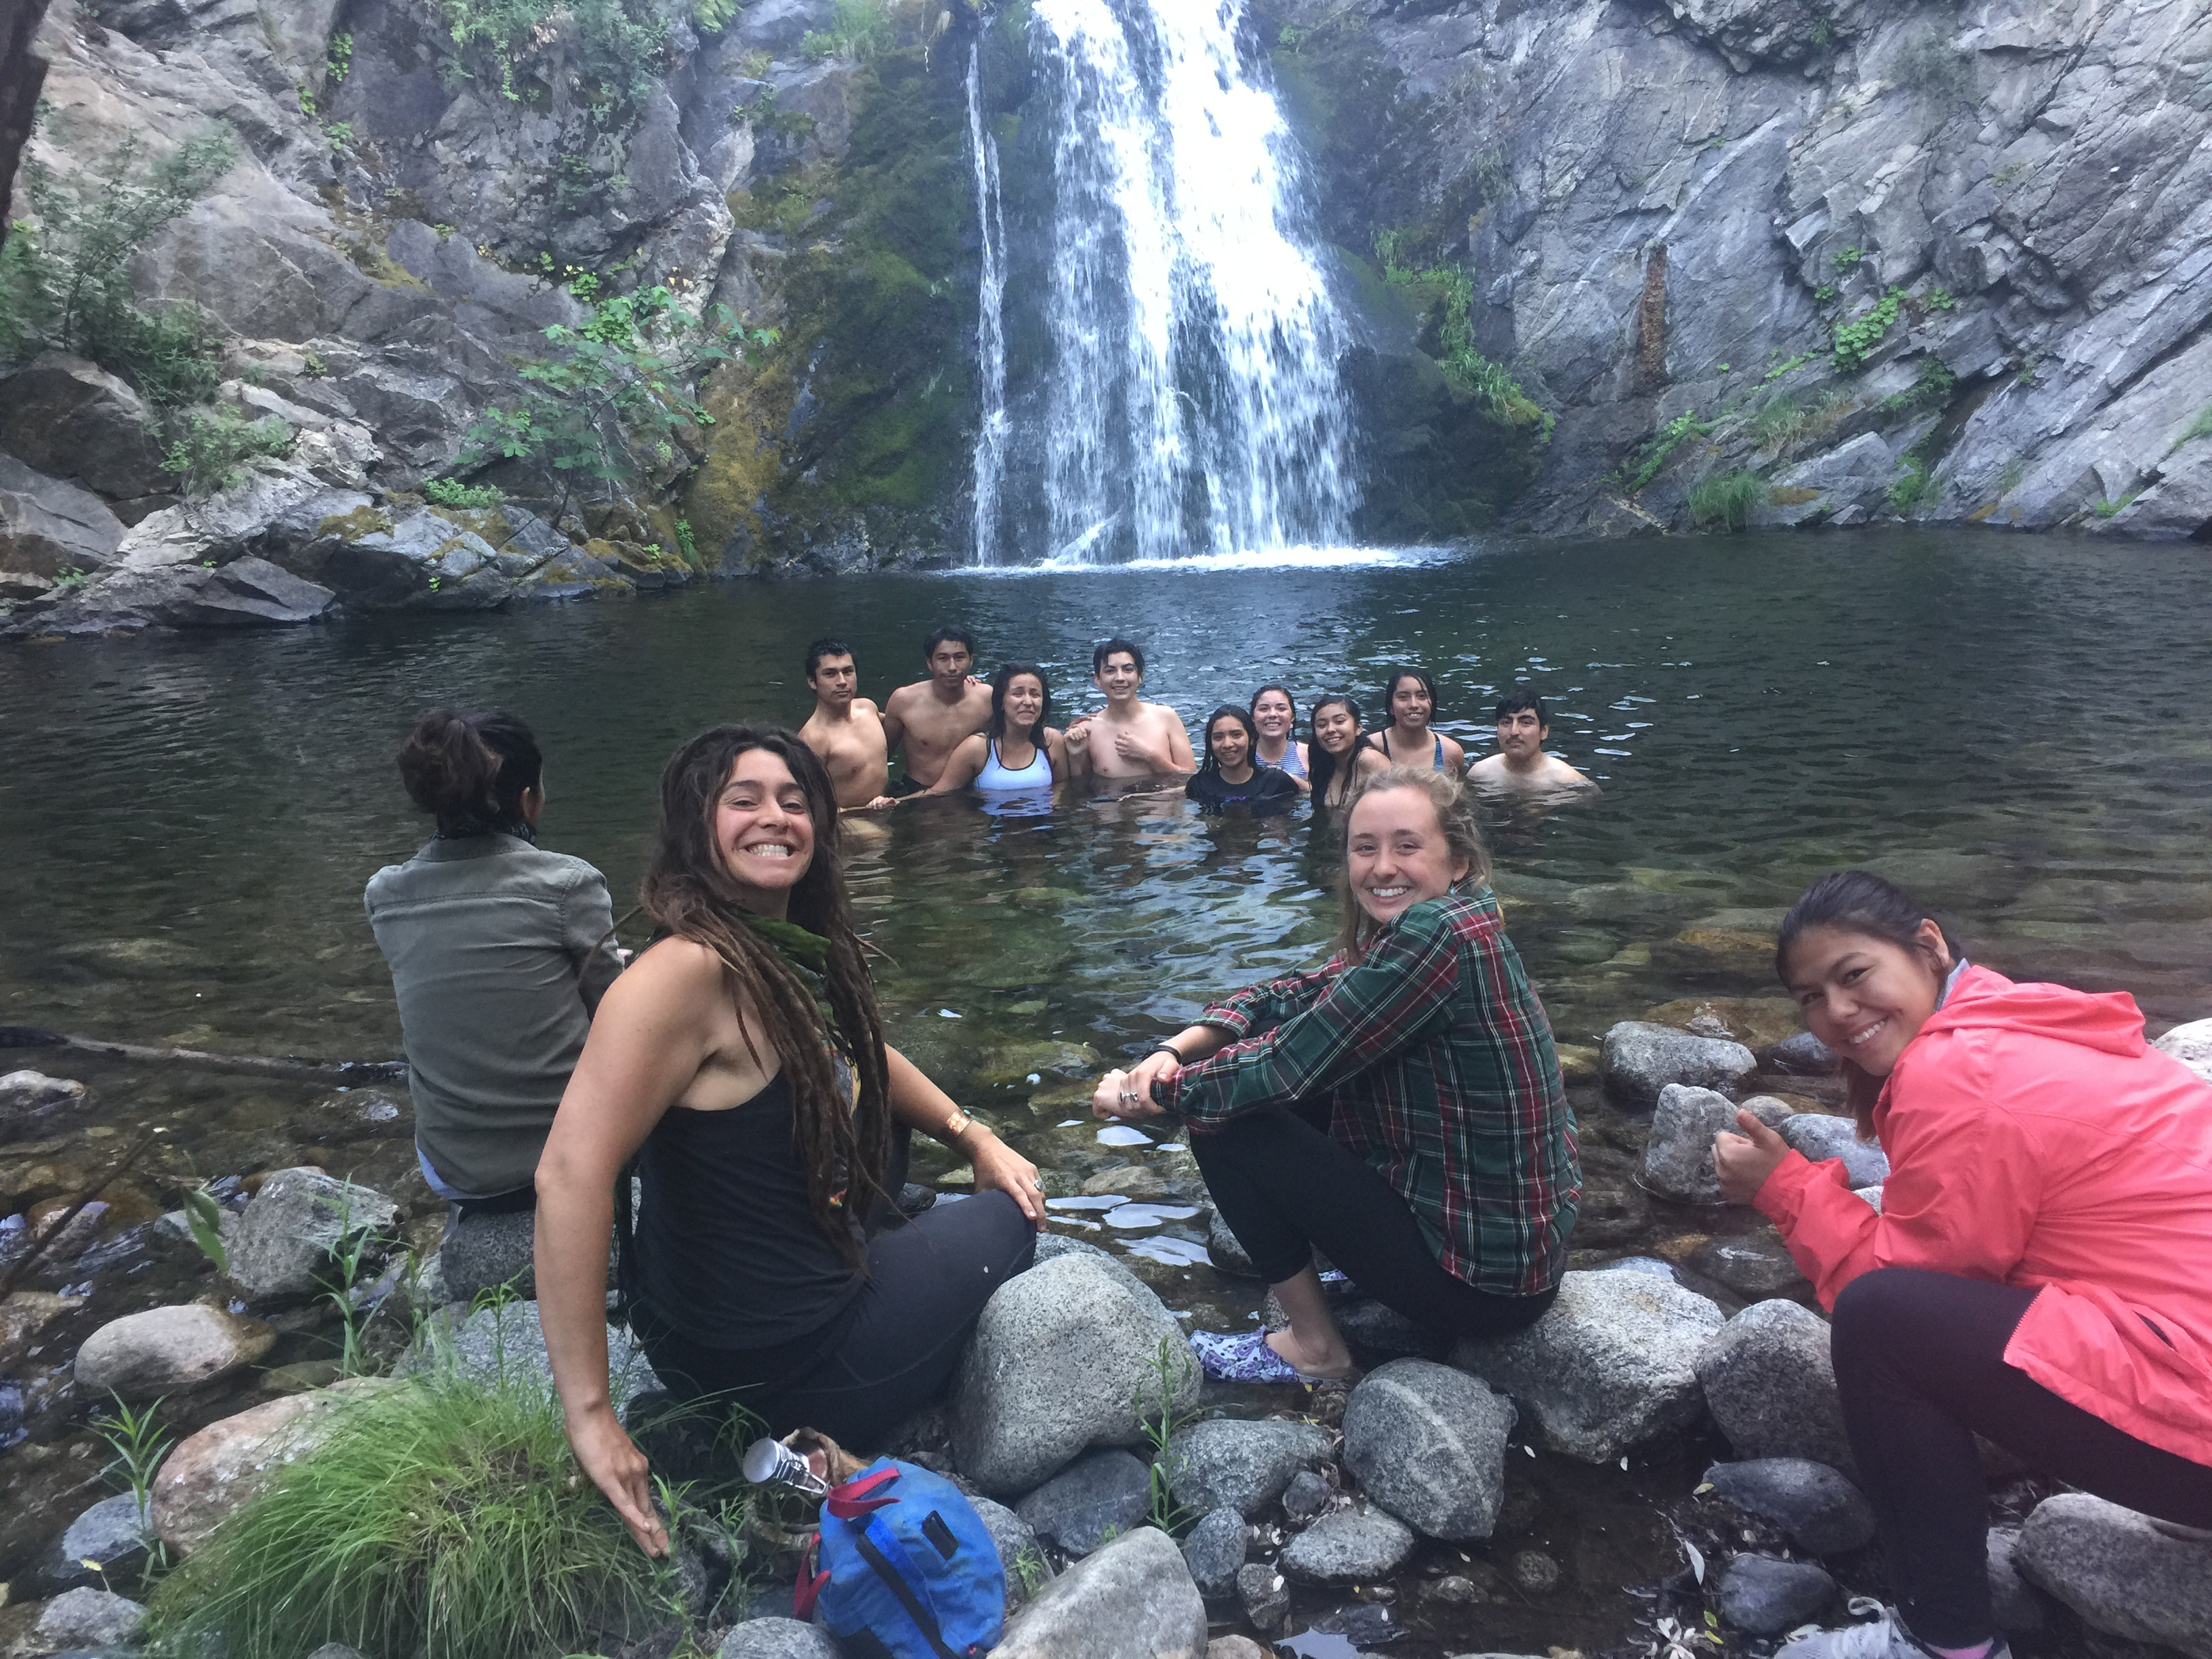 Camping in Arroyo Seco with the Ventanna Wilderness Society